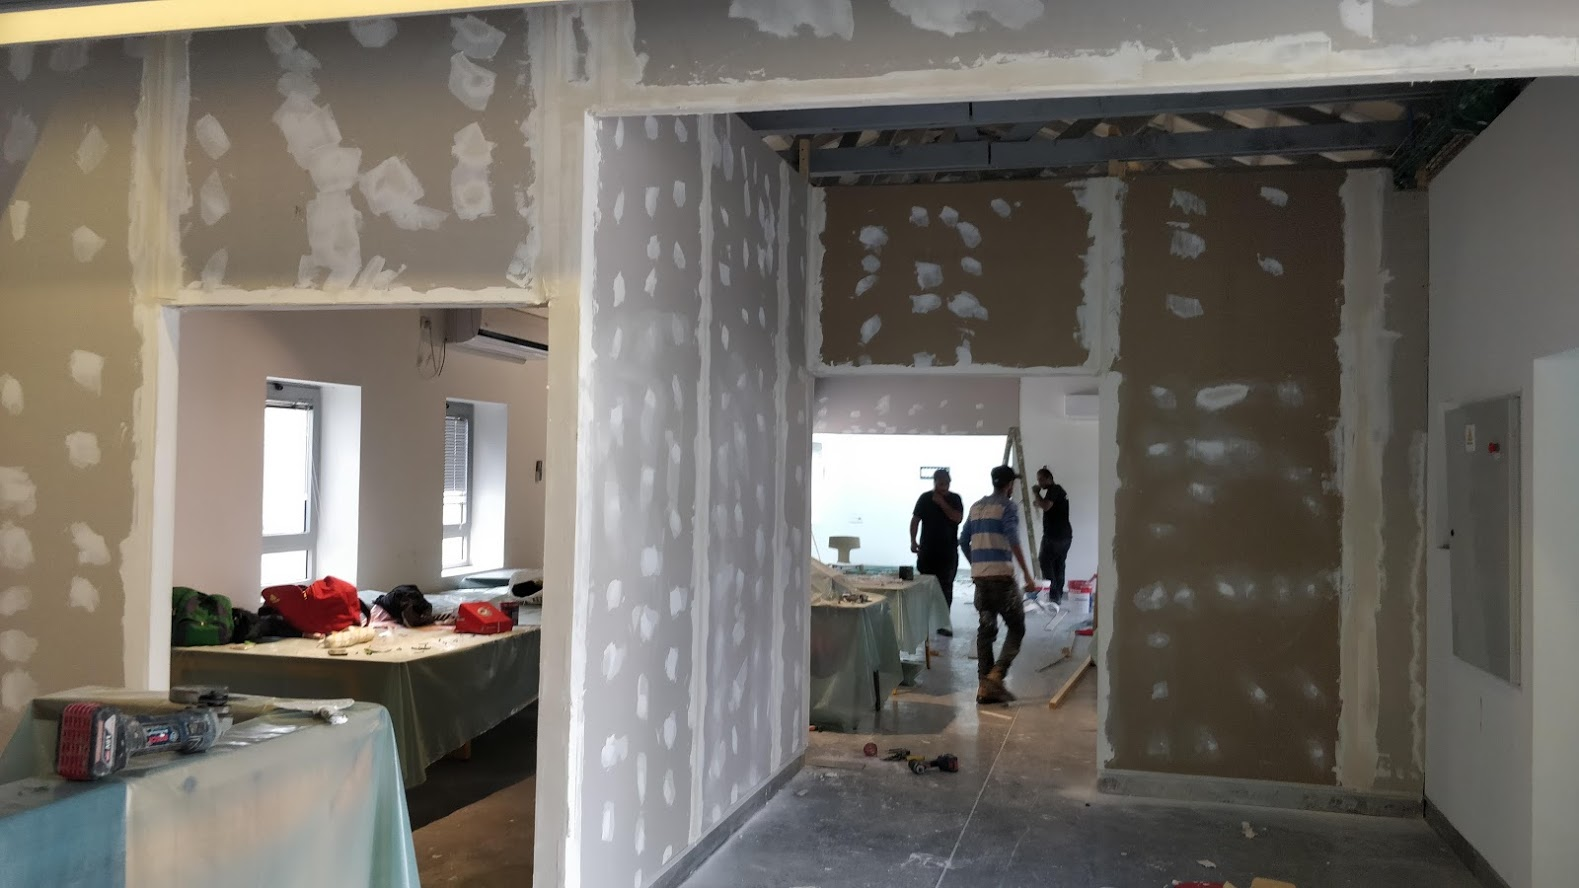 October 23, 2019 – We started renovating and adjusting our space in Spring Valley